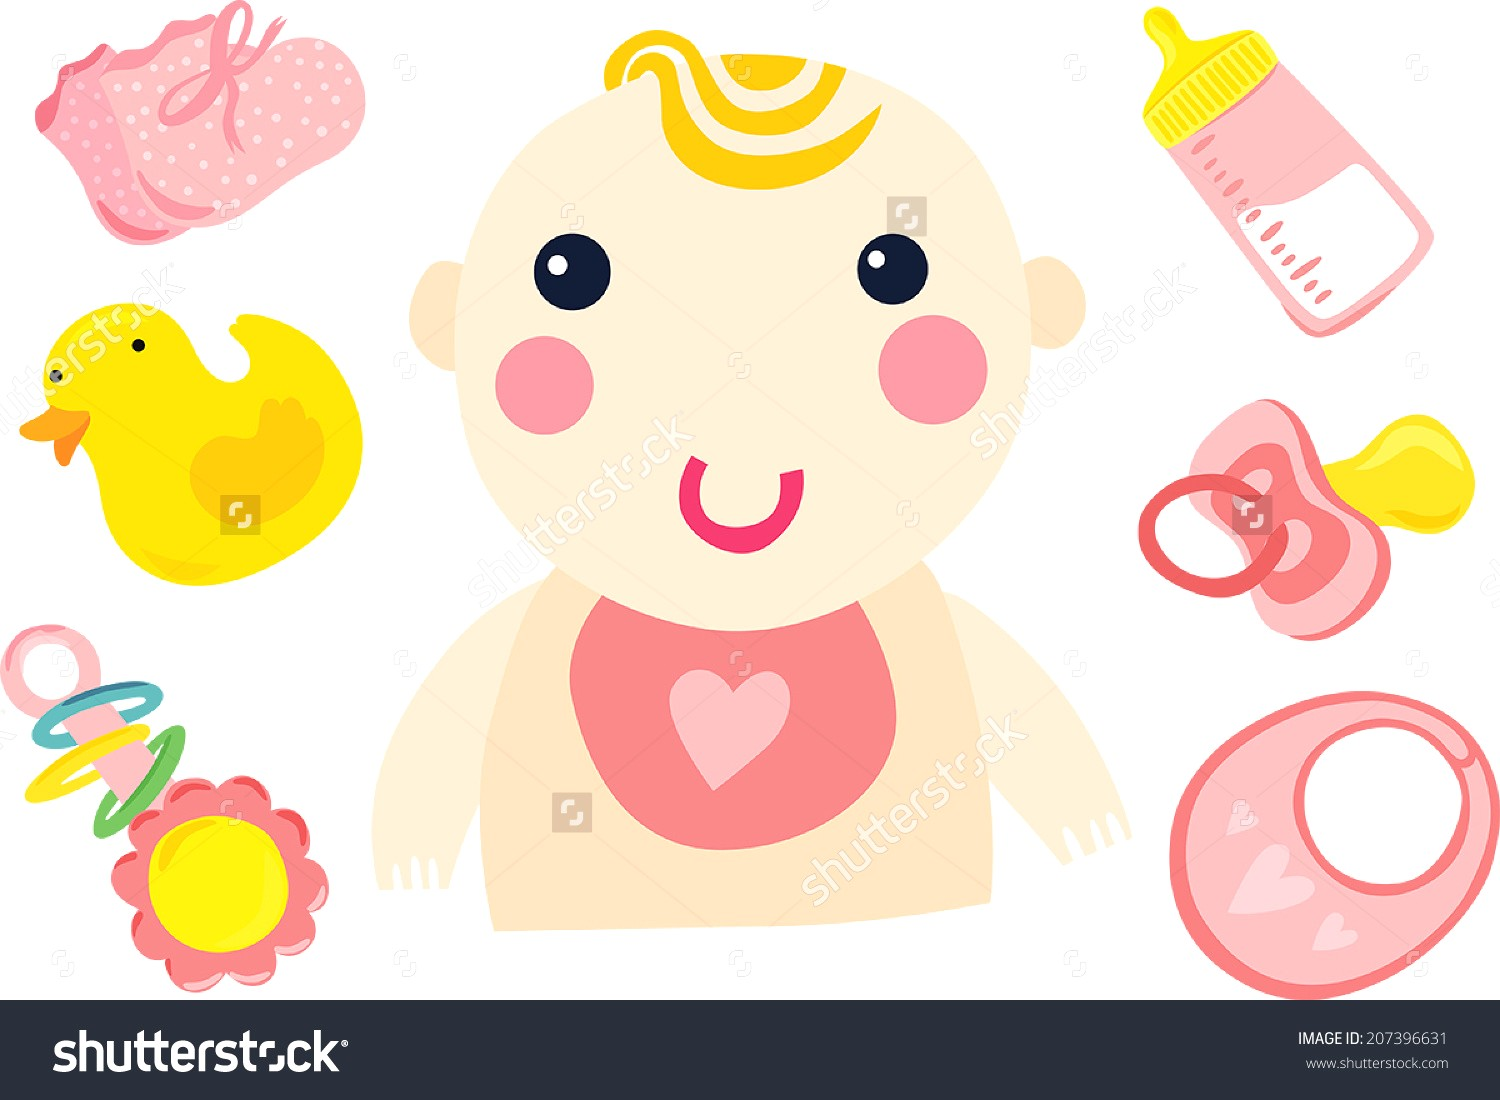 1500x1100 Newborn Baby Stuff Icons Set Vector 1632652 15 Pictures Of